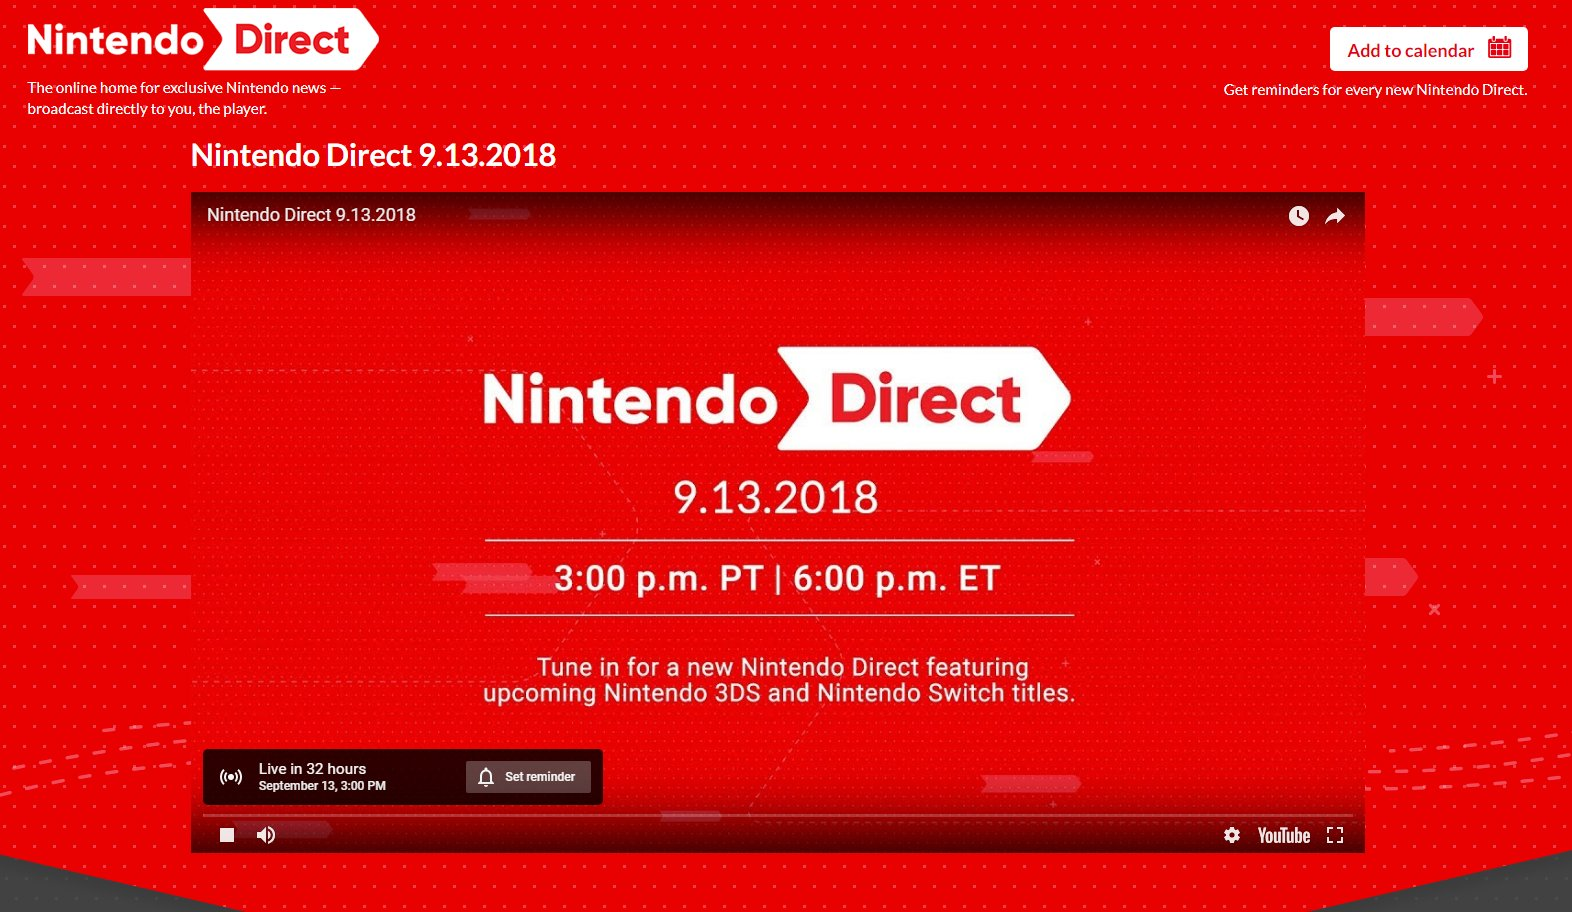 Nintendo Direct confirmed for tomorrow at 3PM PT https://t.co/XFt8n0XLC5 https://t.co/yOAvr8IdlT